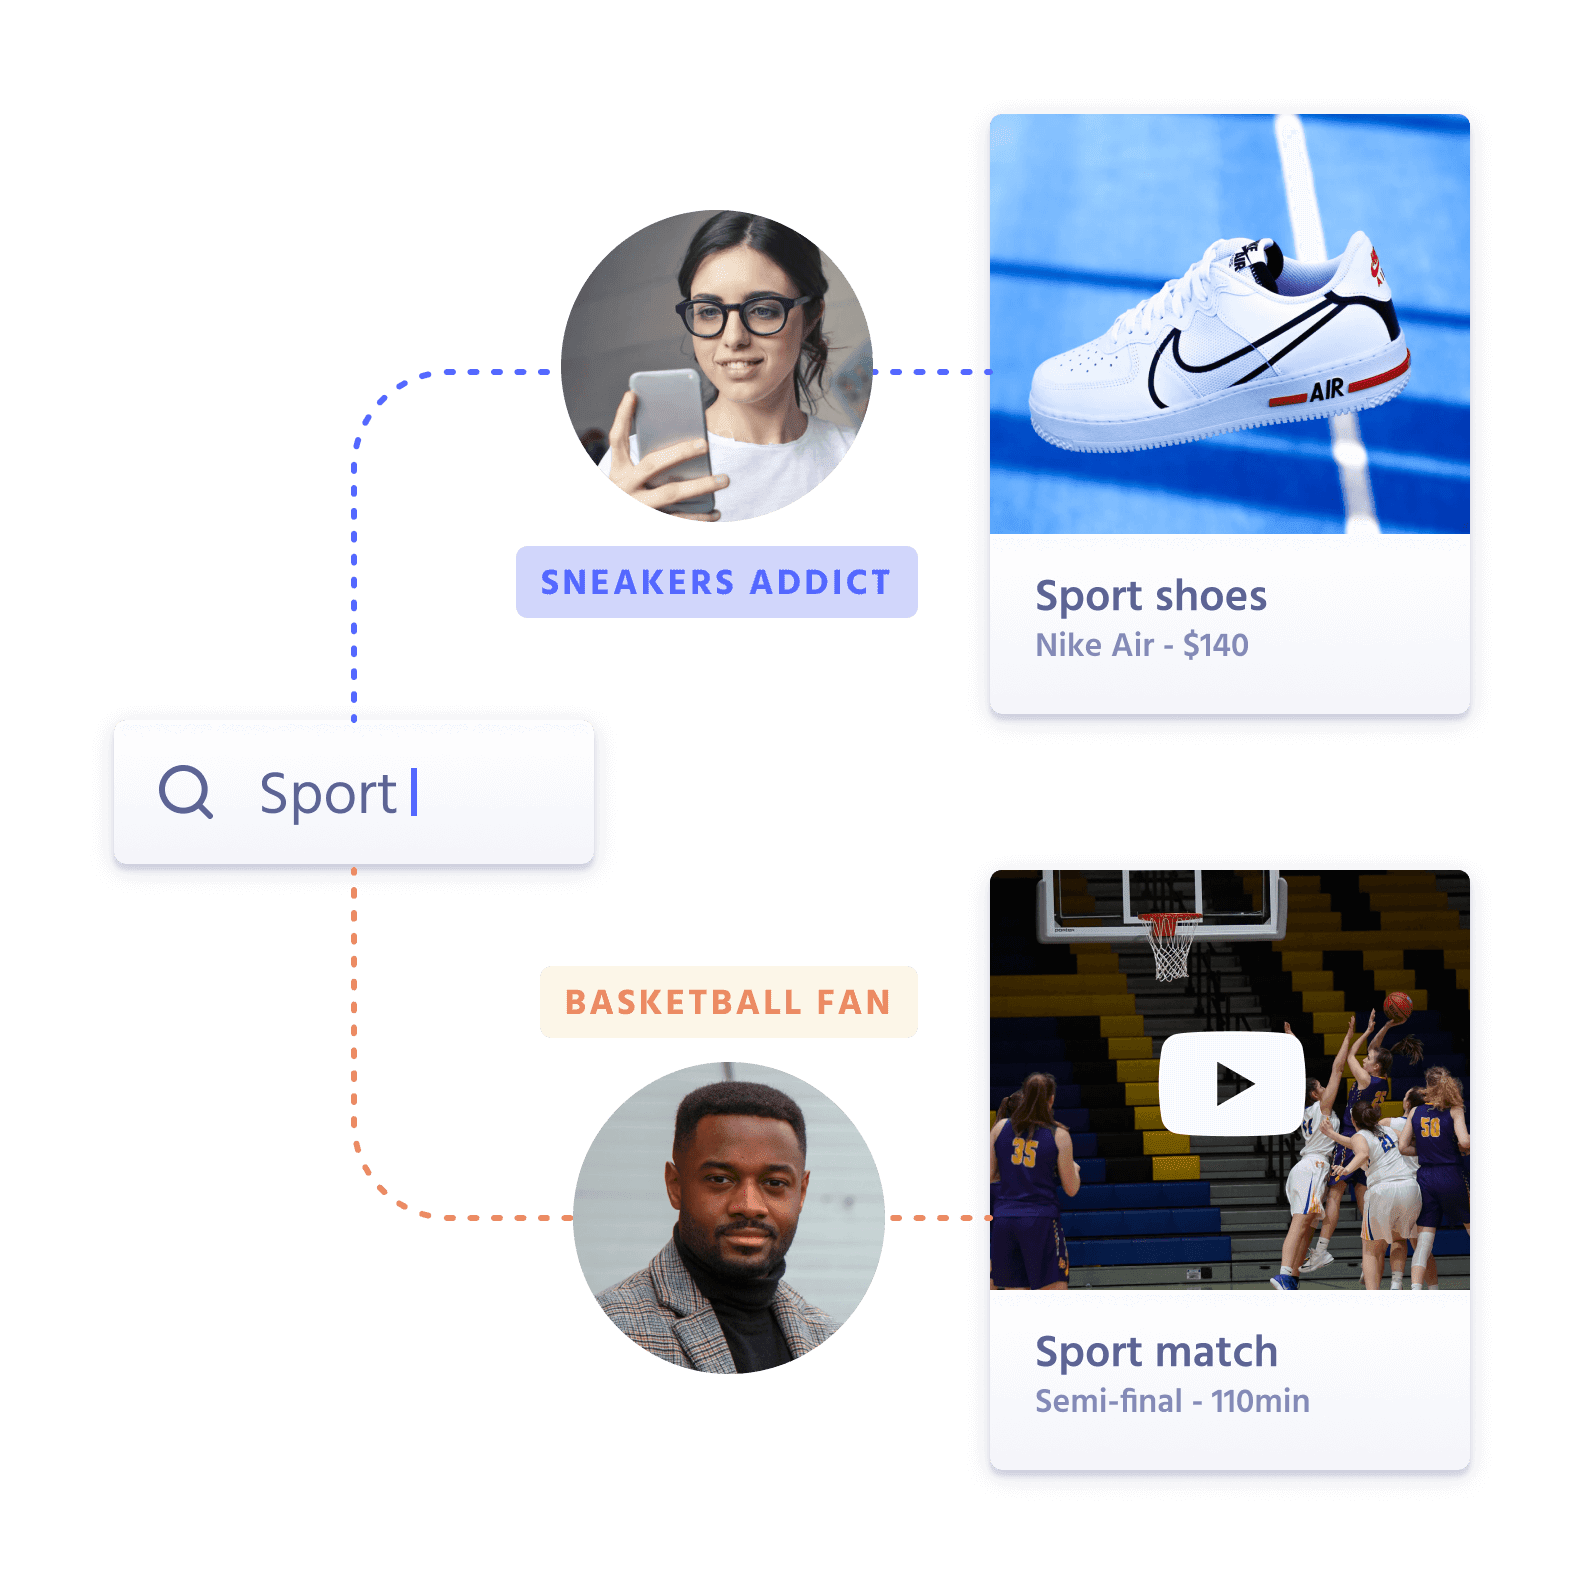 Intent-based Recommendations